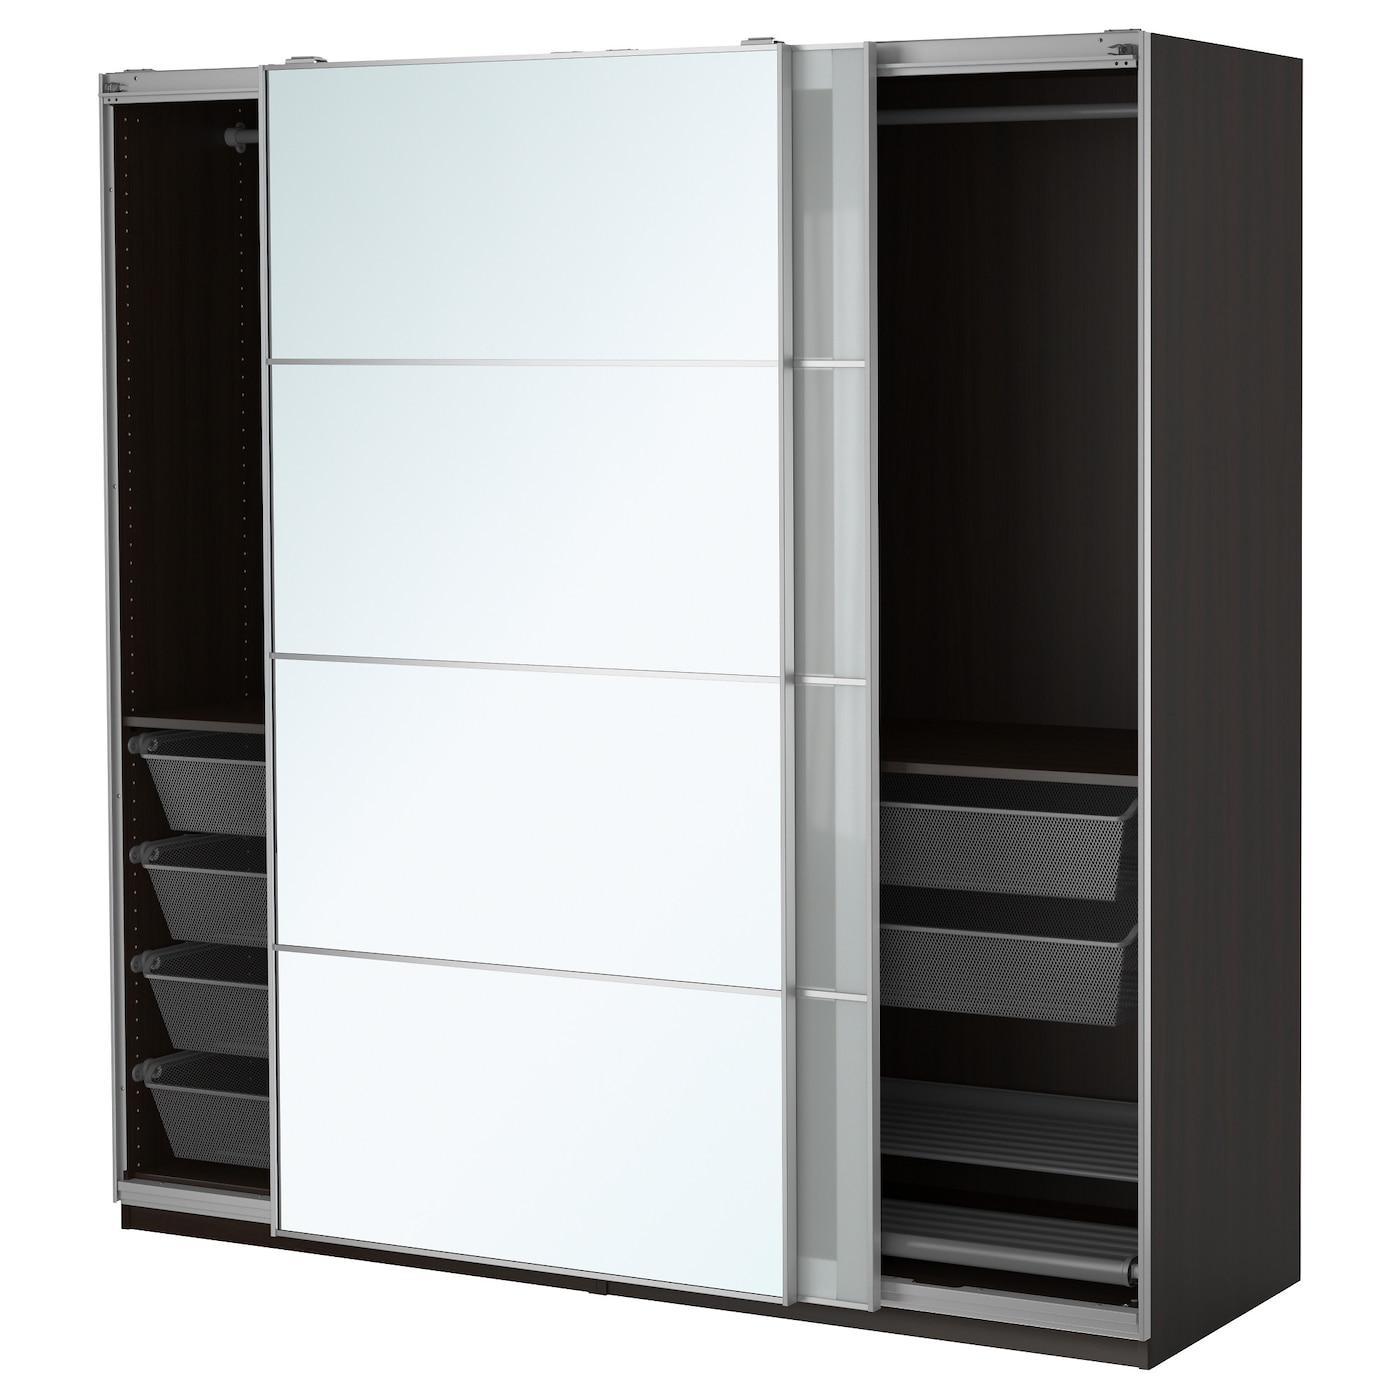 pax wardrobe black brown auli sekken 200 x 66 x 201 cm ikea. Black Bedroom Furniture Sets. Home Design Ideas